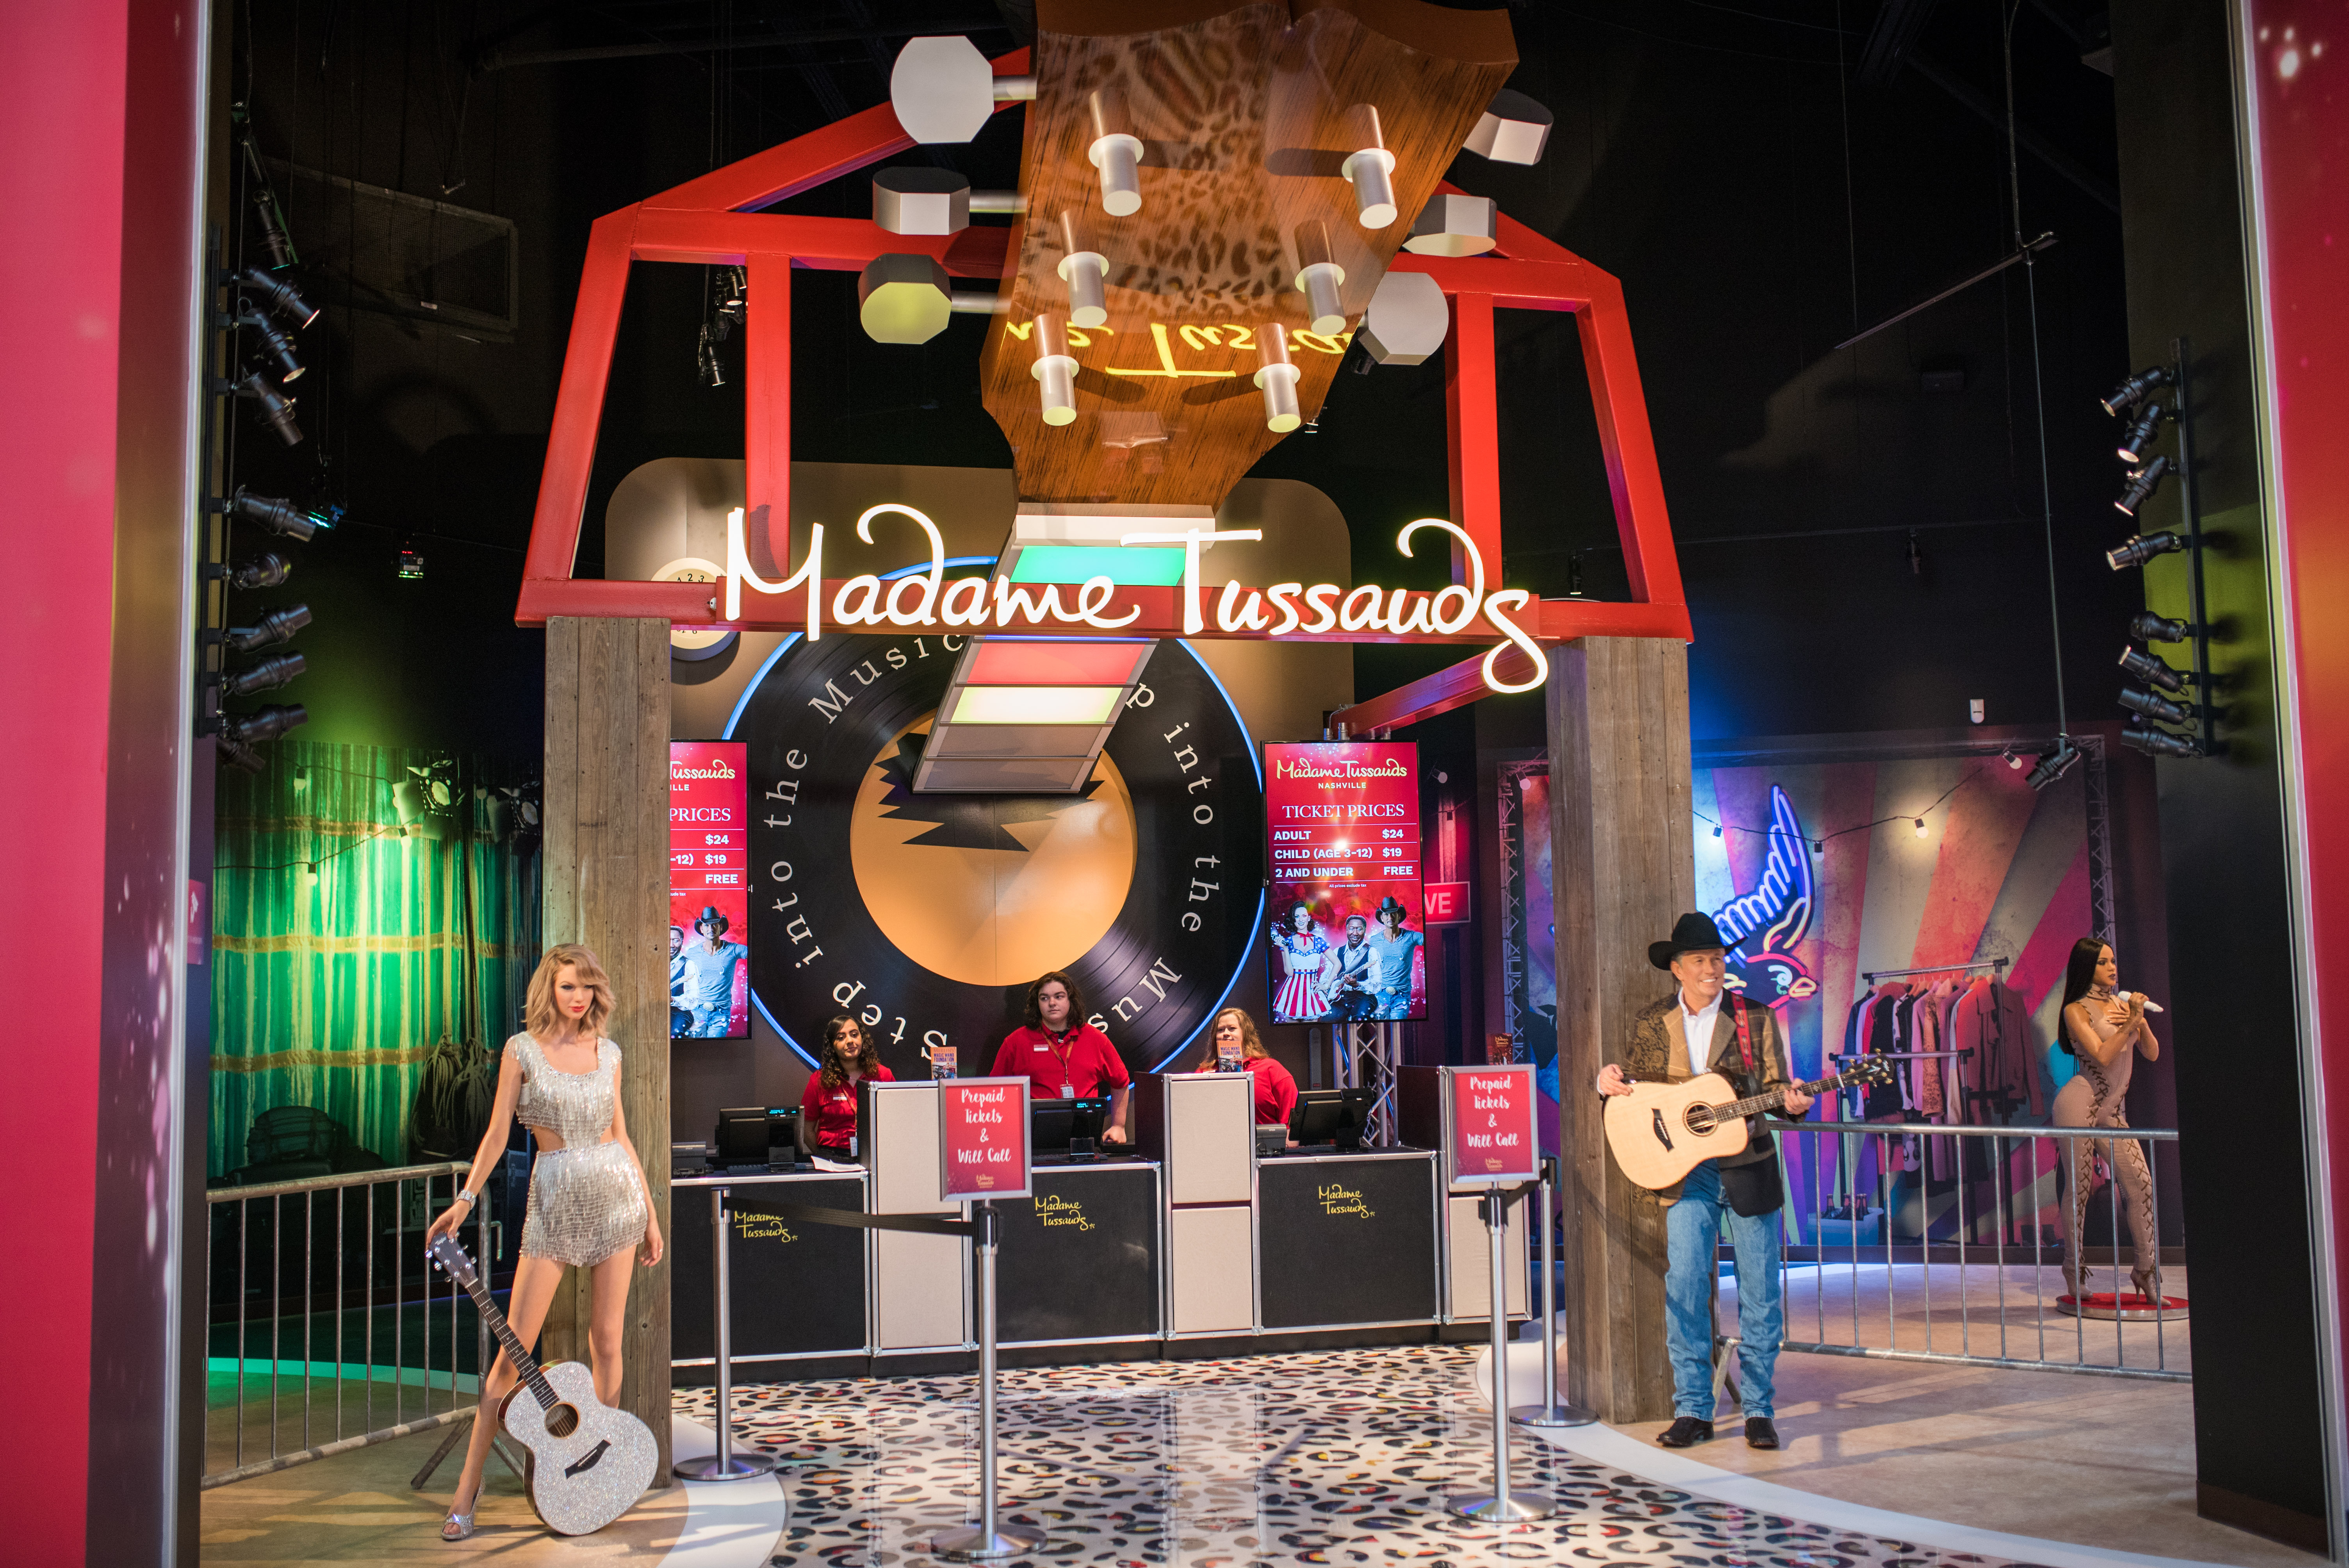 Madame Tussauds Nashville officially opened to the public today, Friday, April 14. (Photo: Business Wire)